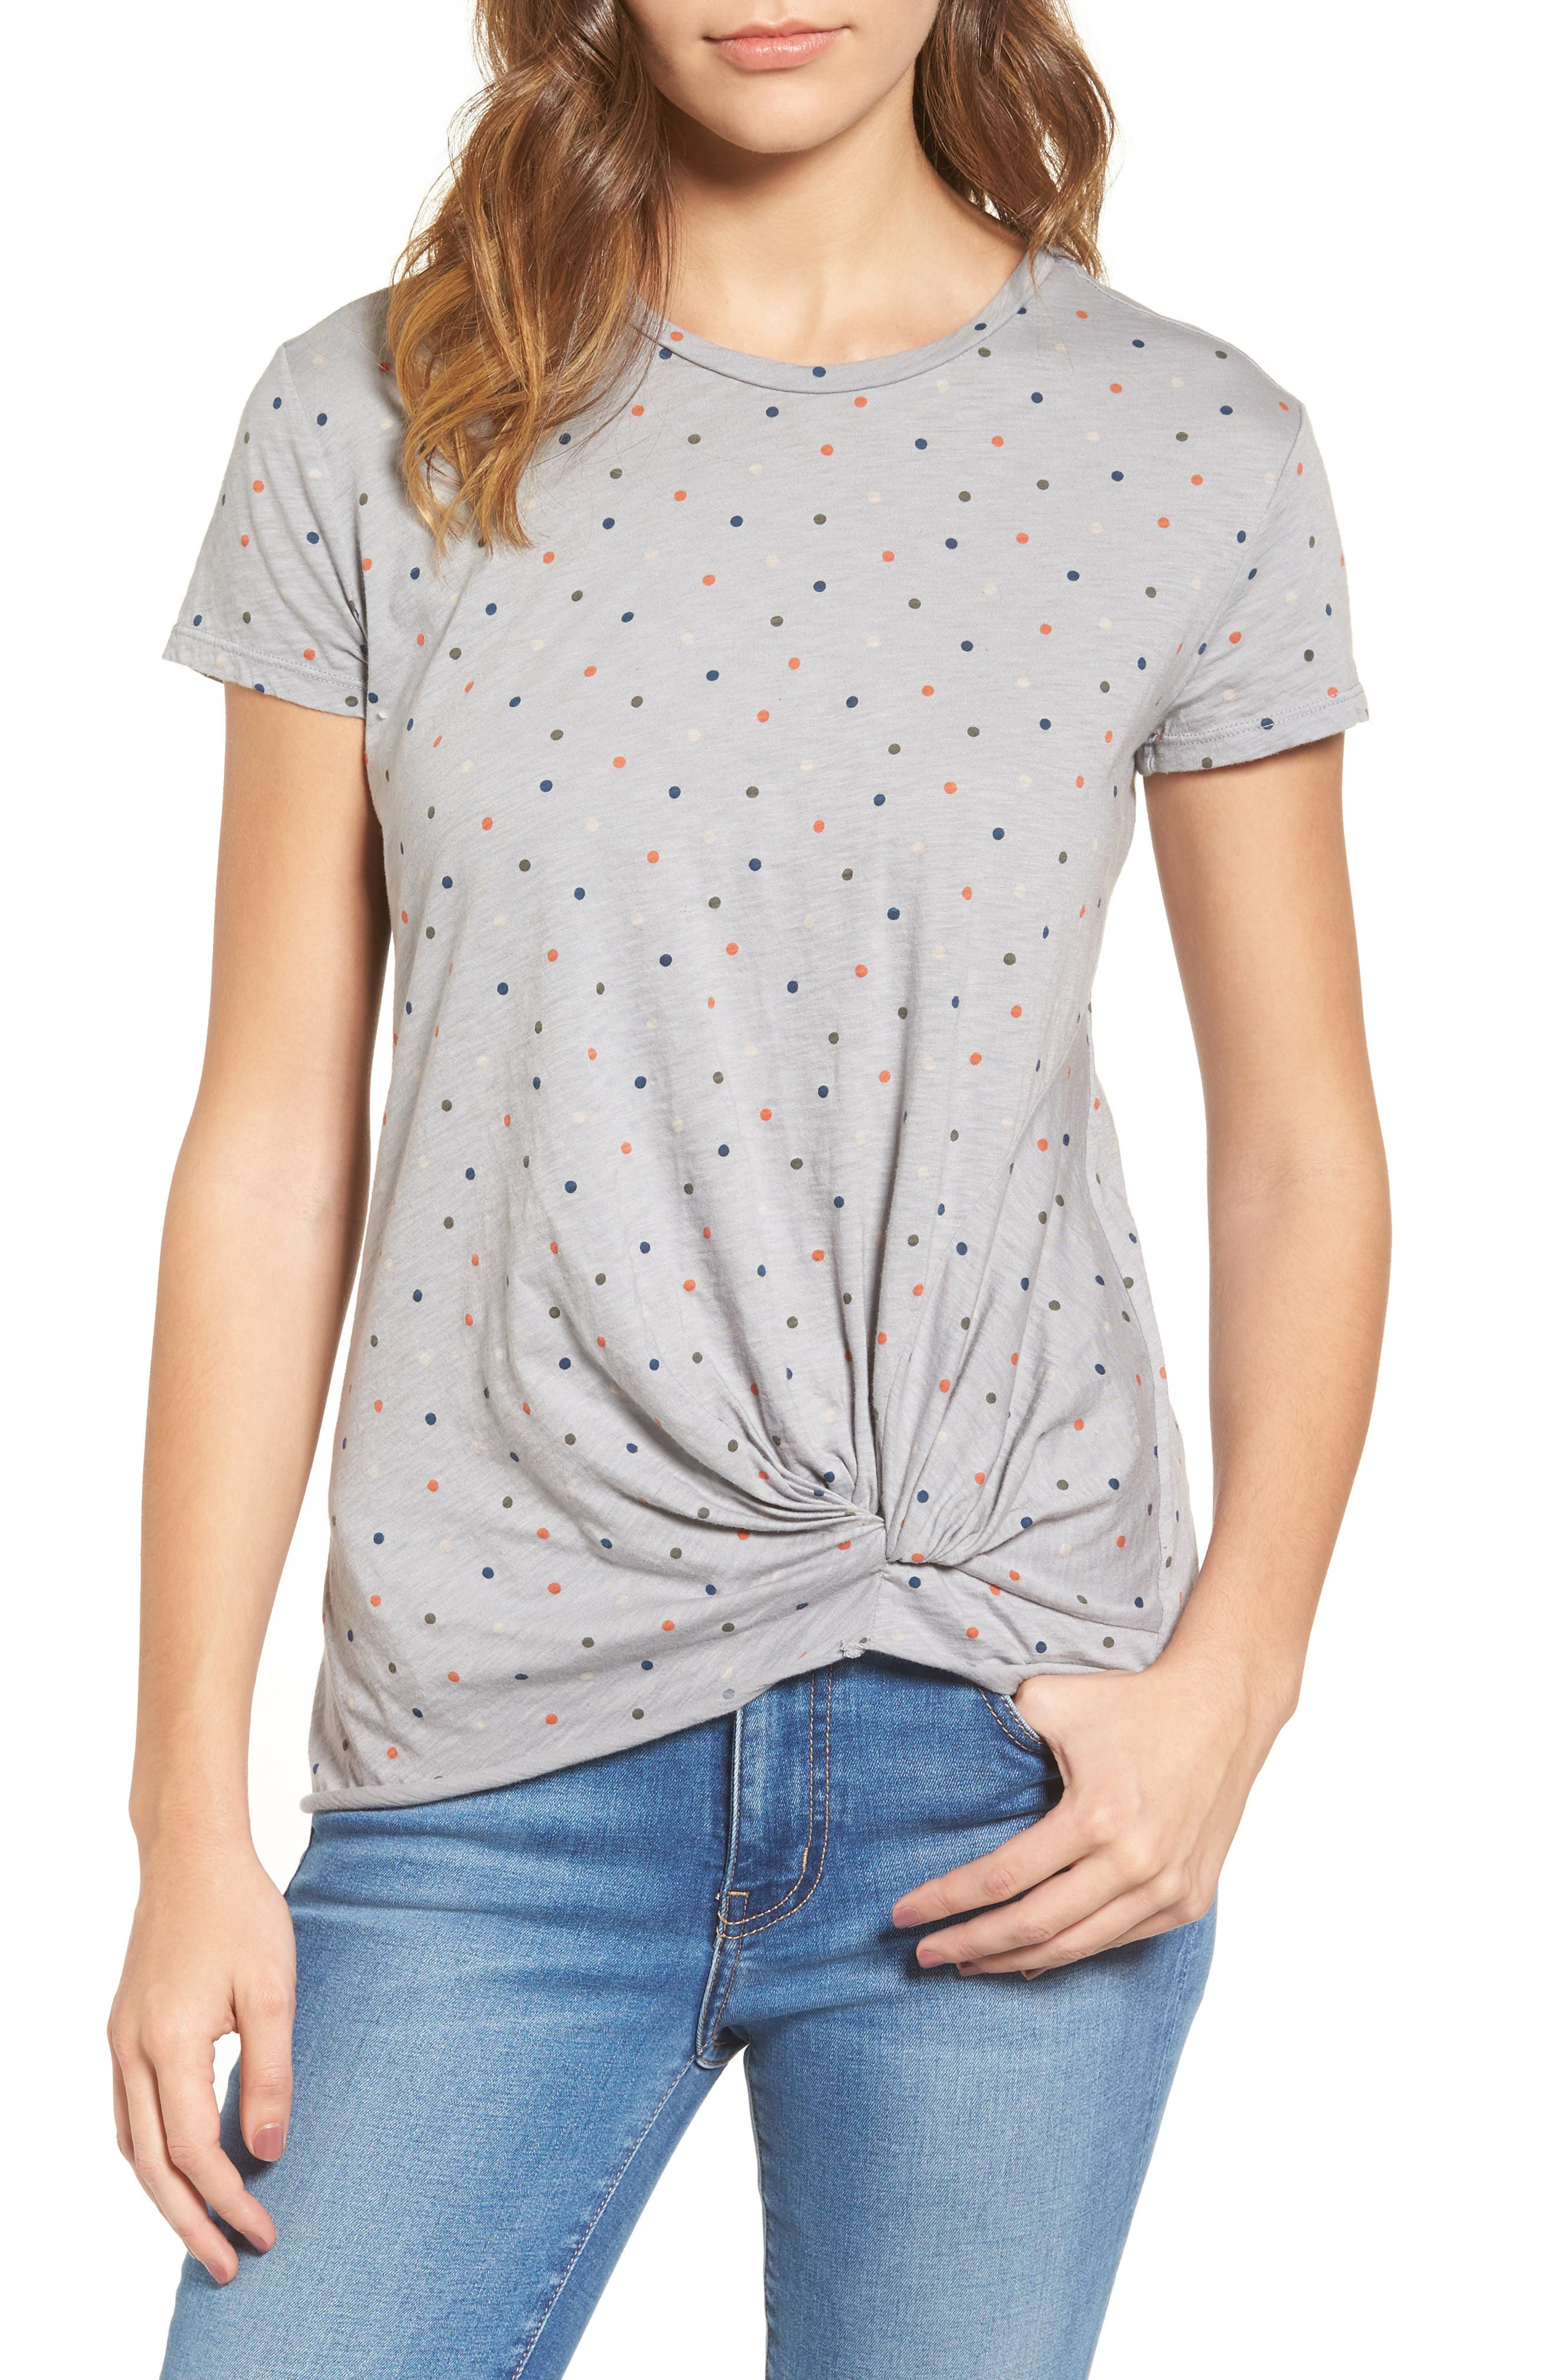 Stateside Polka Dot Twist Tee